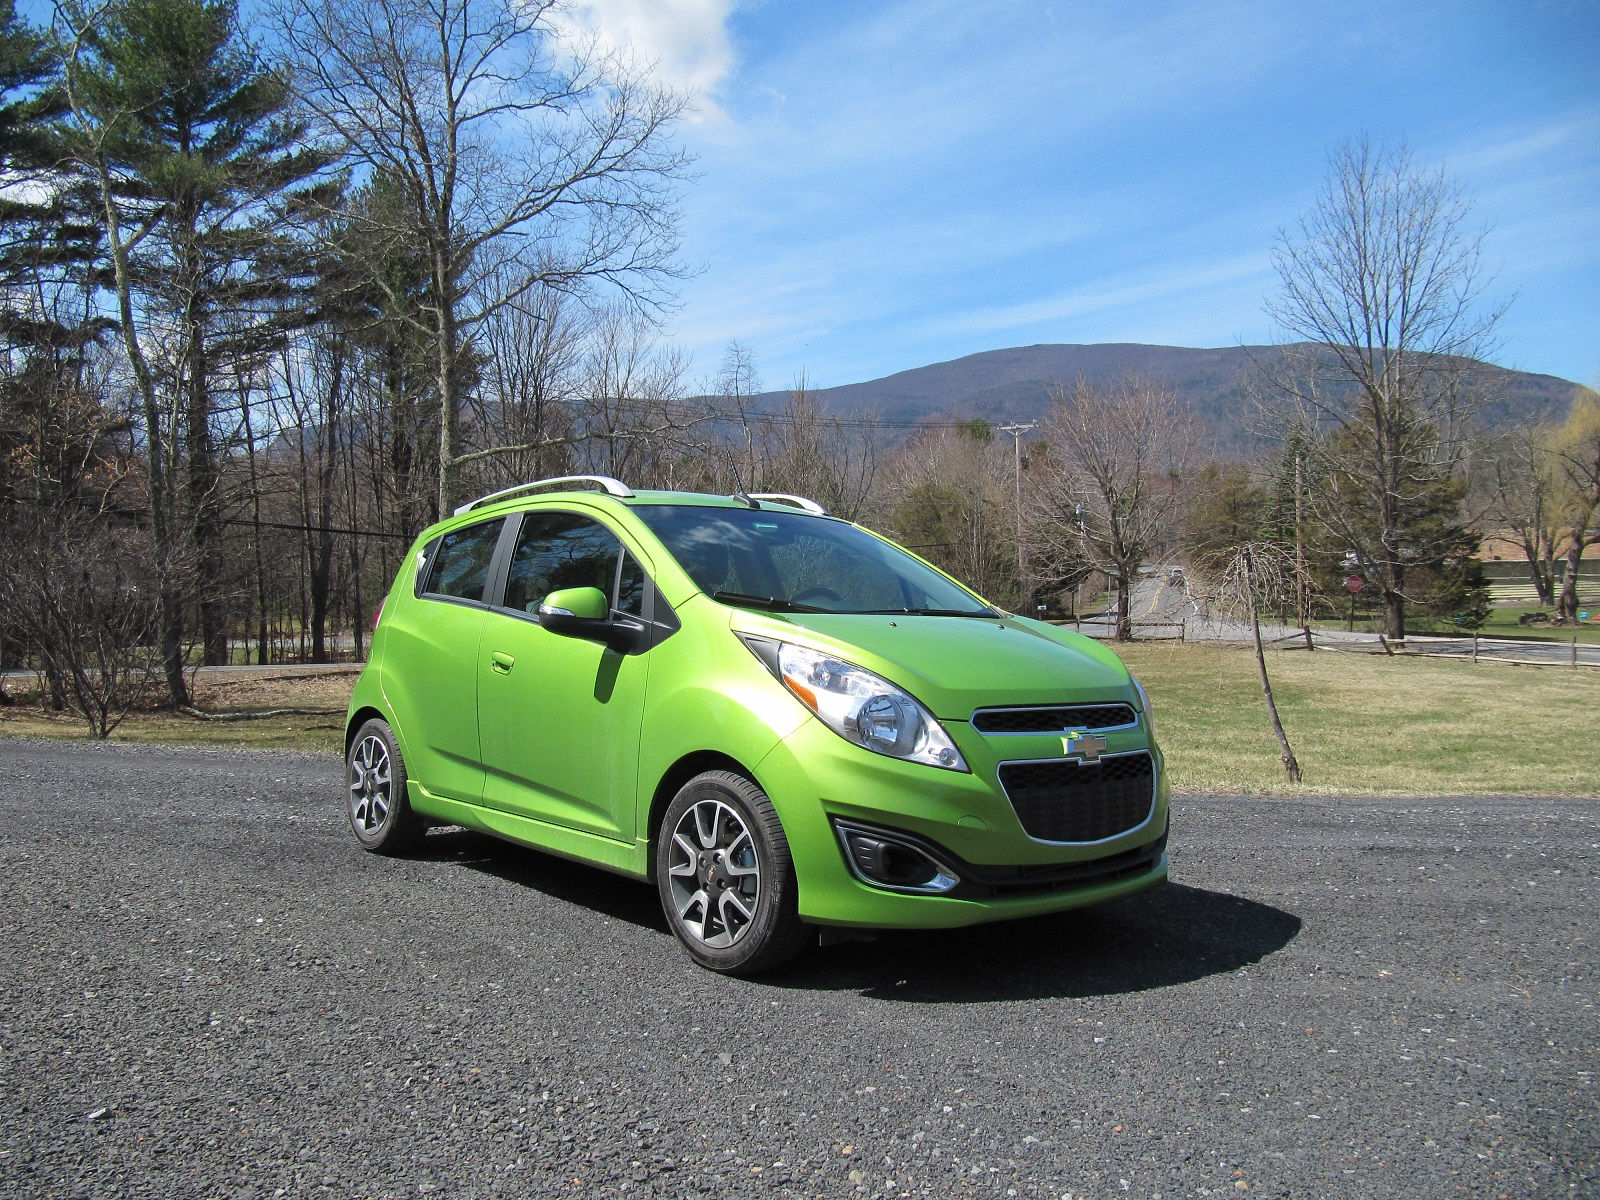 More Tesla Superchargers 2014 Chevrolet Spark Gas Mileage New Vw Diesel Today S Car News